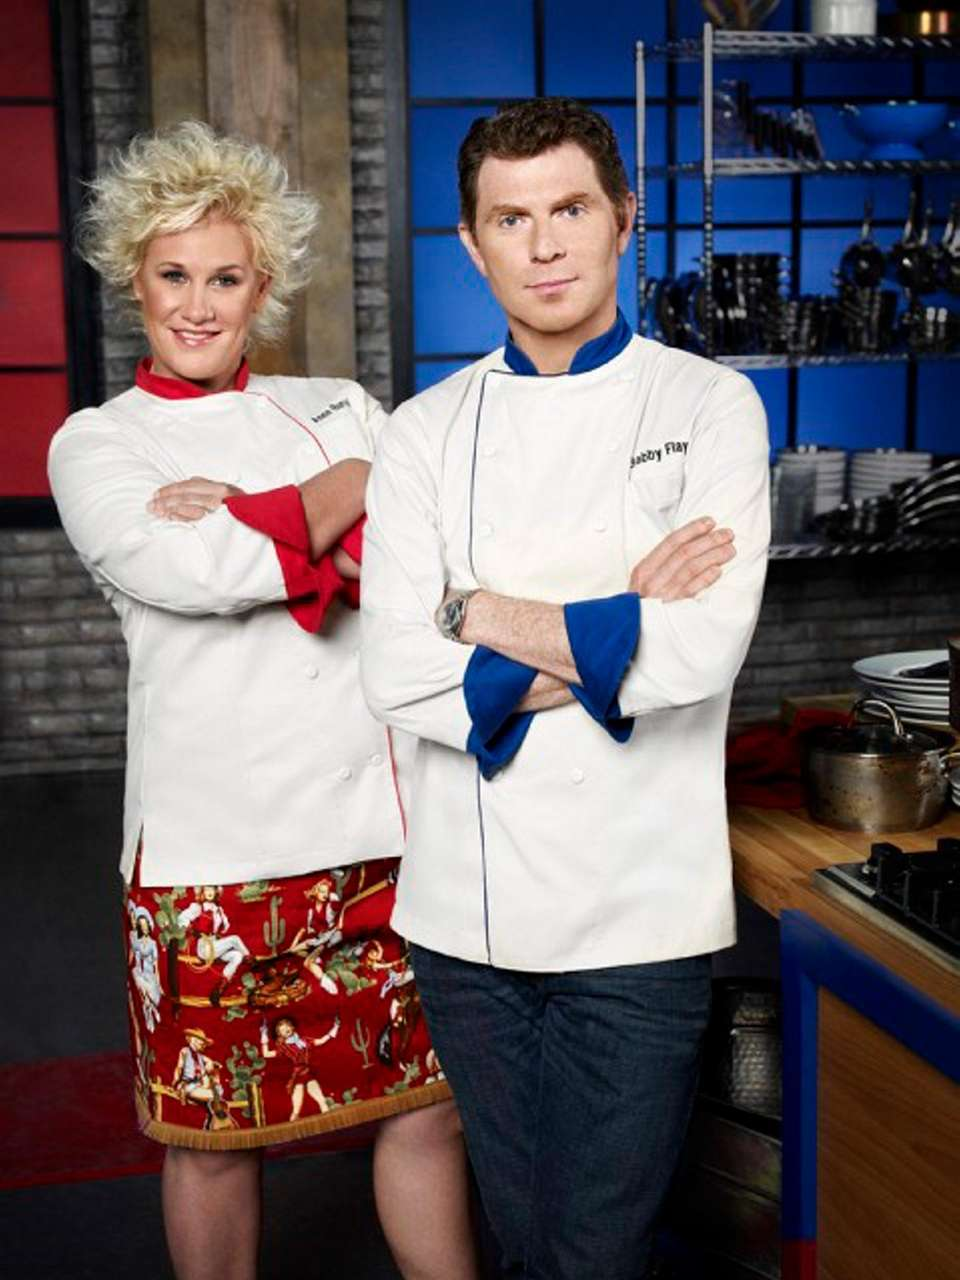 (Food Network, 2010-present): Bobby Flay and Anne Burrell